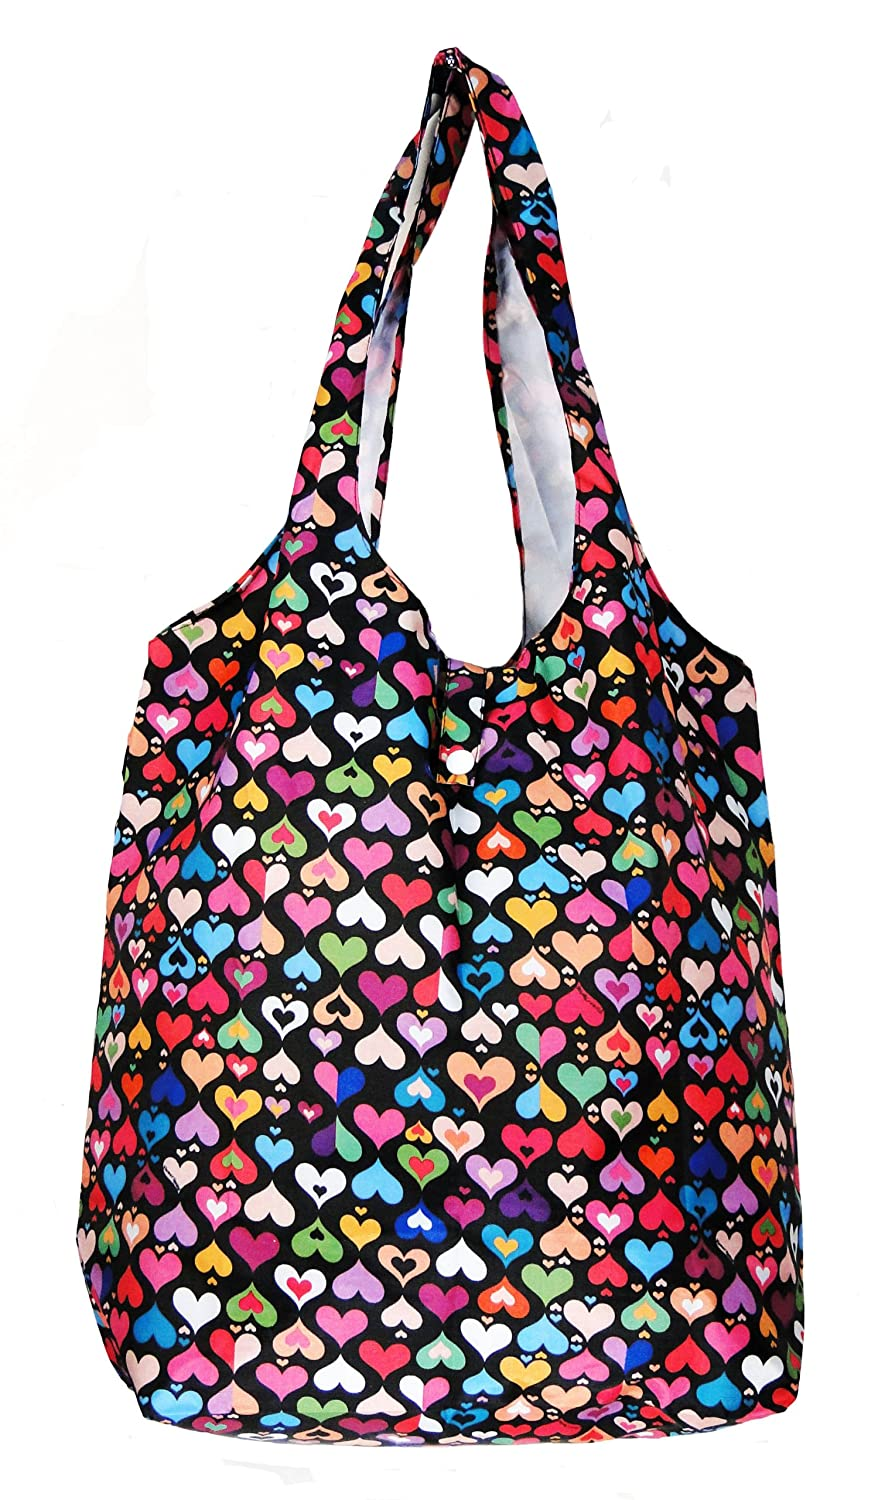 Amazon.com: Trendy Sturdy Shopping Tote Bag - Color Hearts Pattern ...